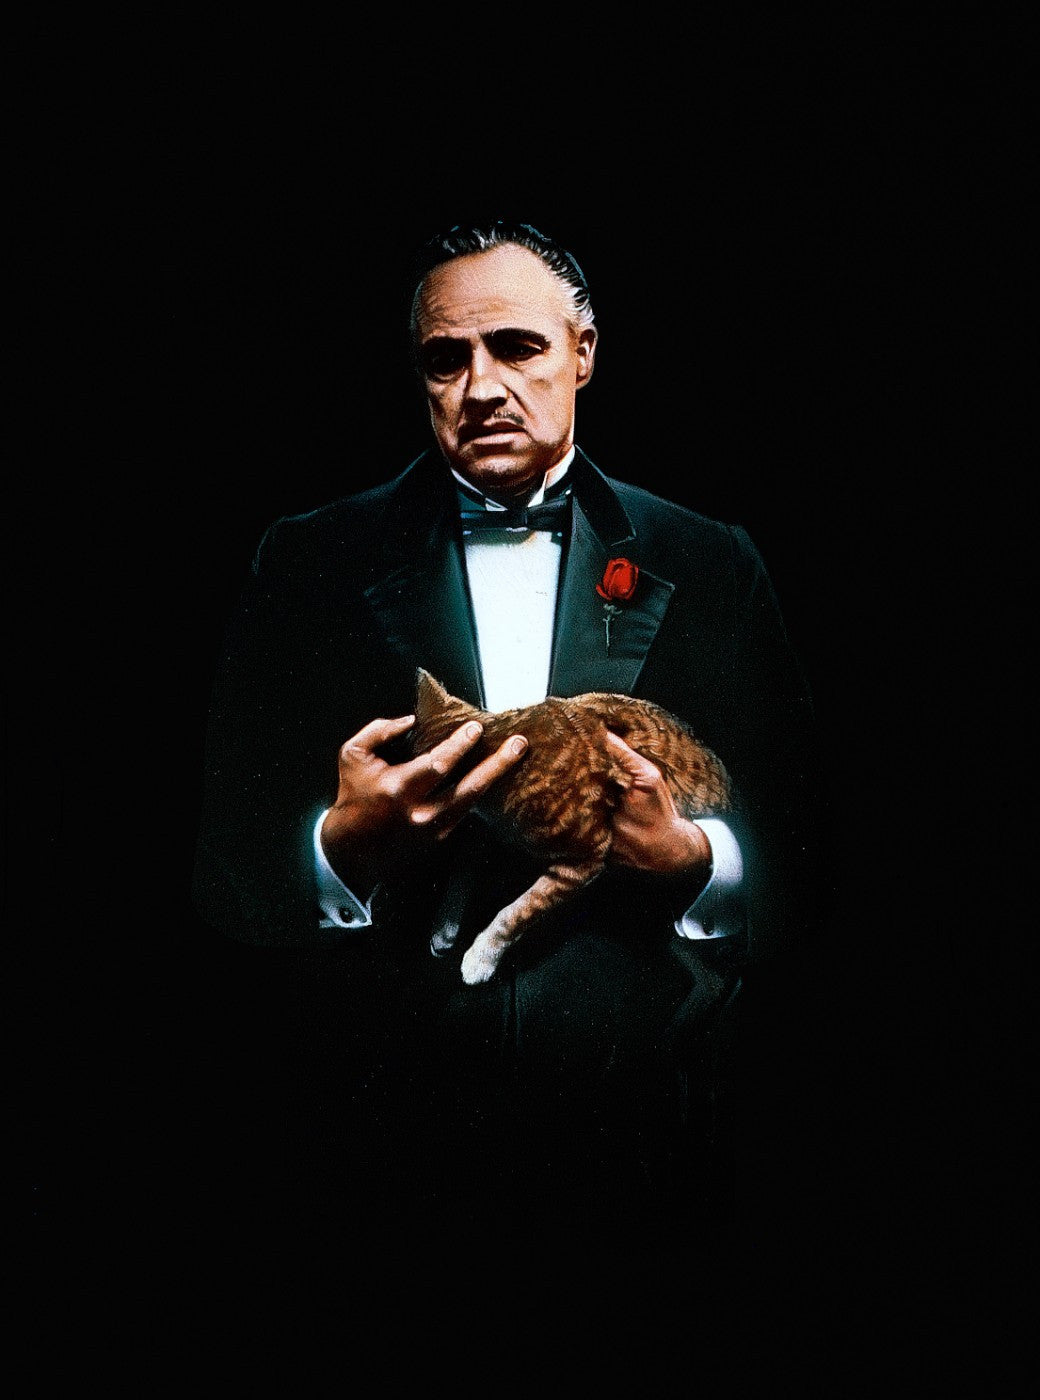 Painting - Marlon Brando As Don Corleone In The Godfather - Hollywood Collection - Large Art Prints